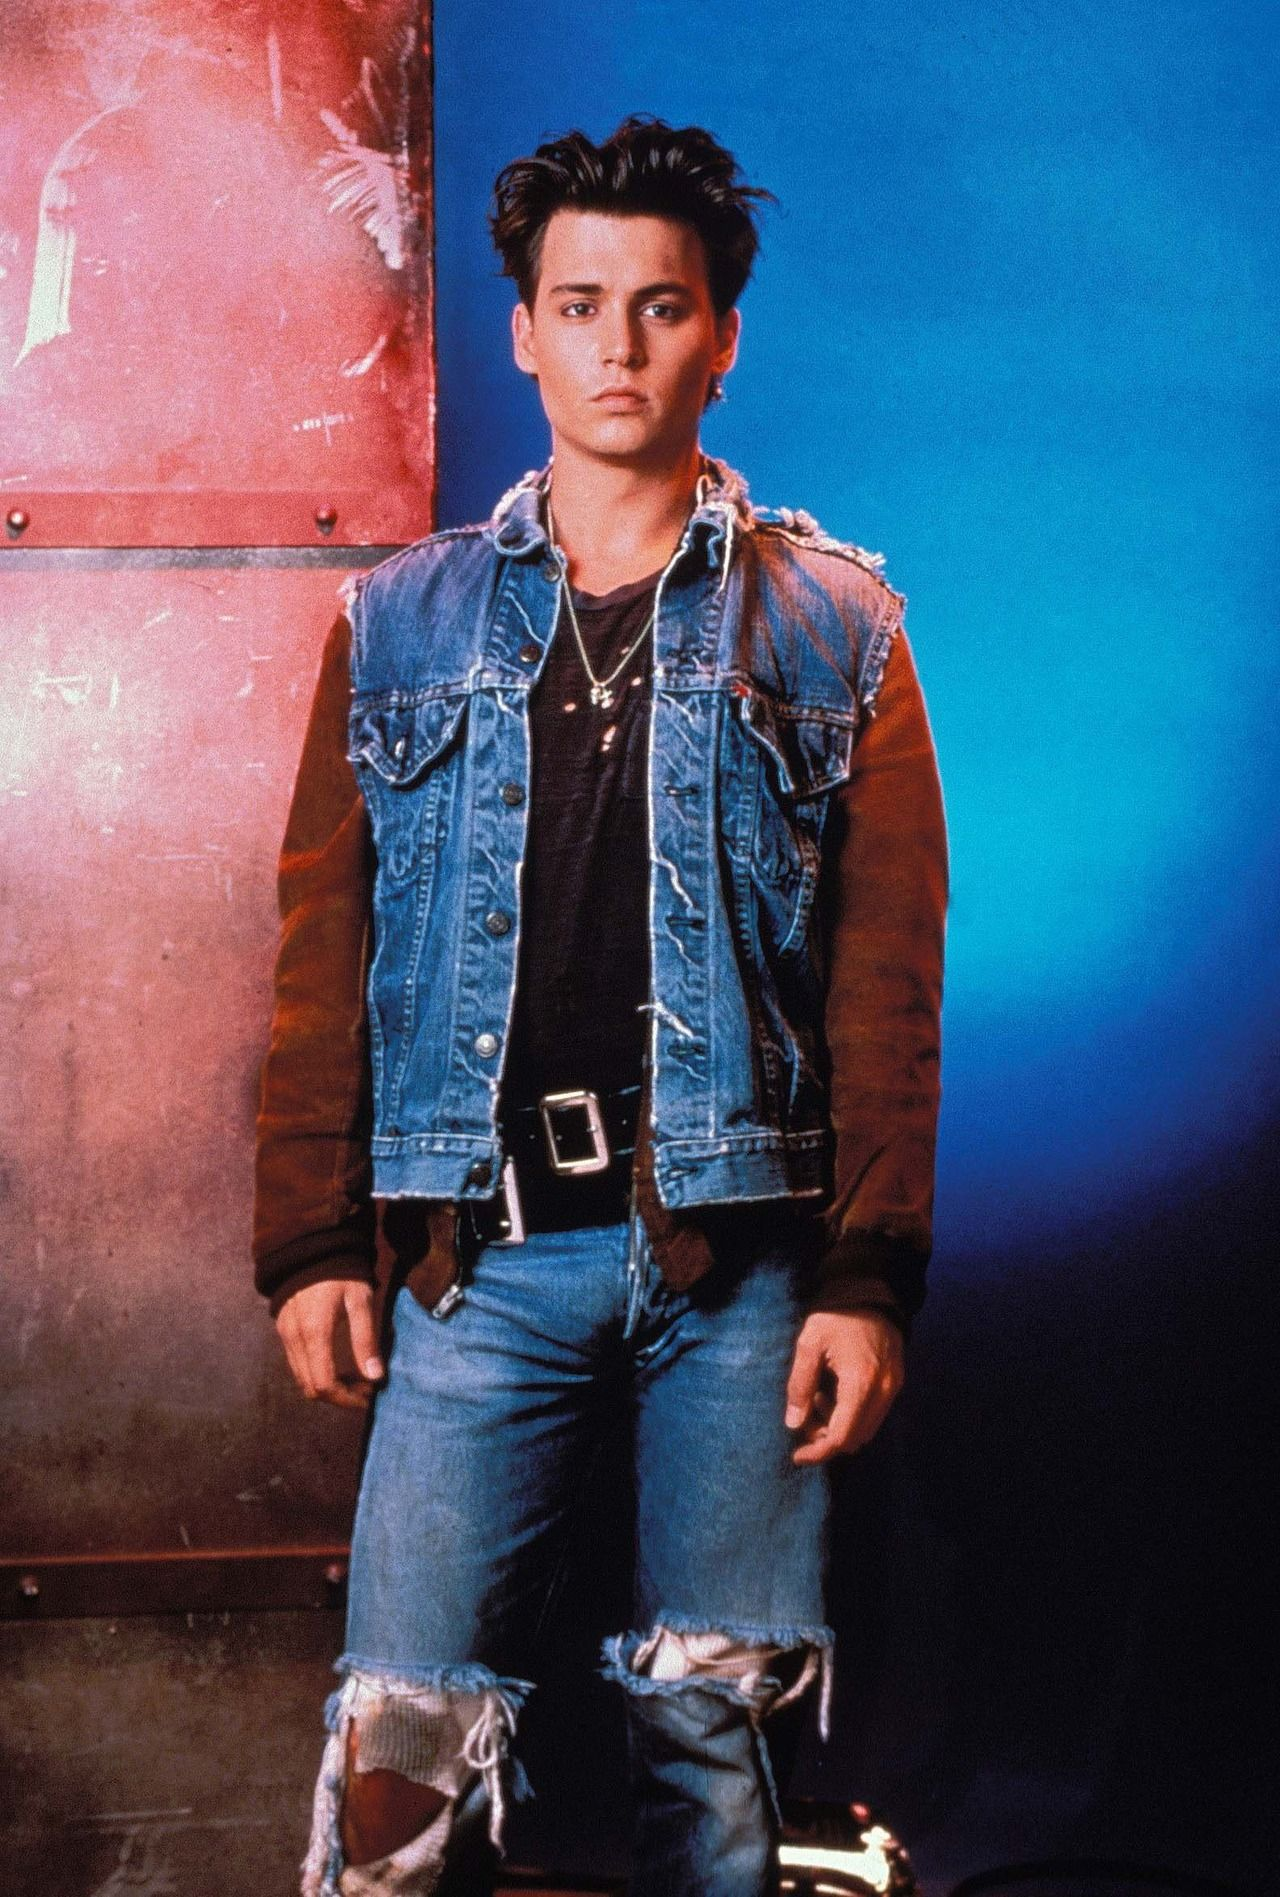 Johnny Depp in 21 Jumpstreet, 1987